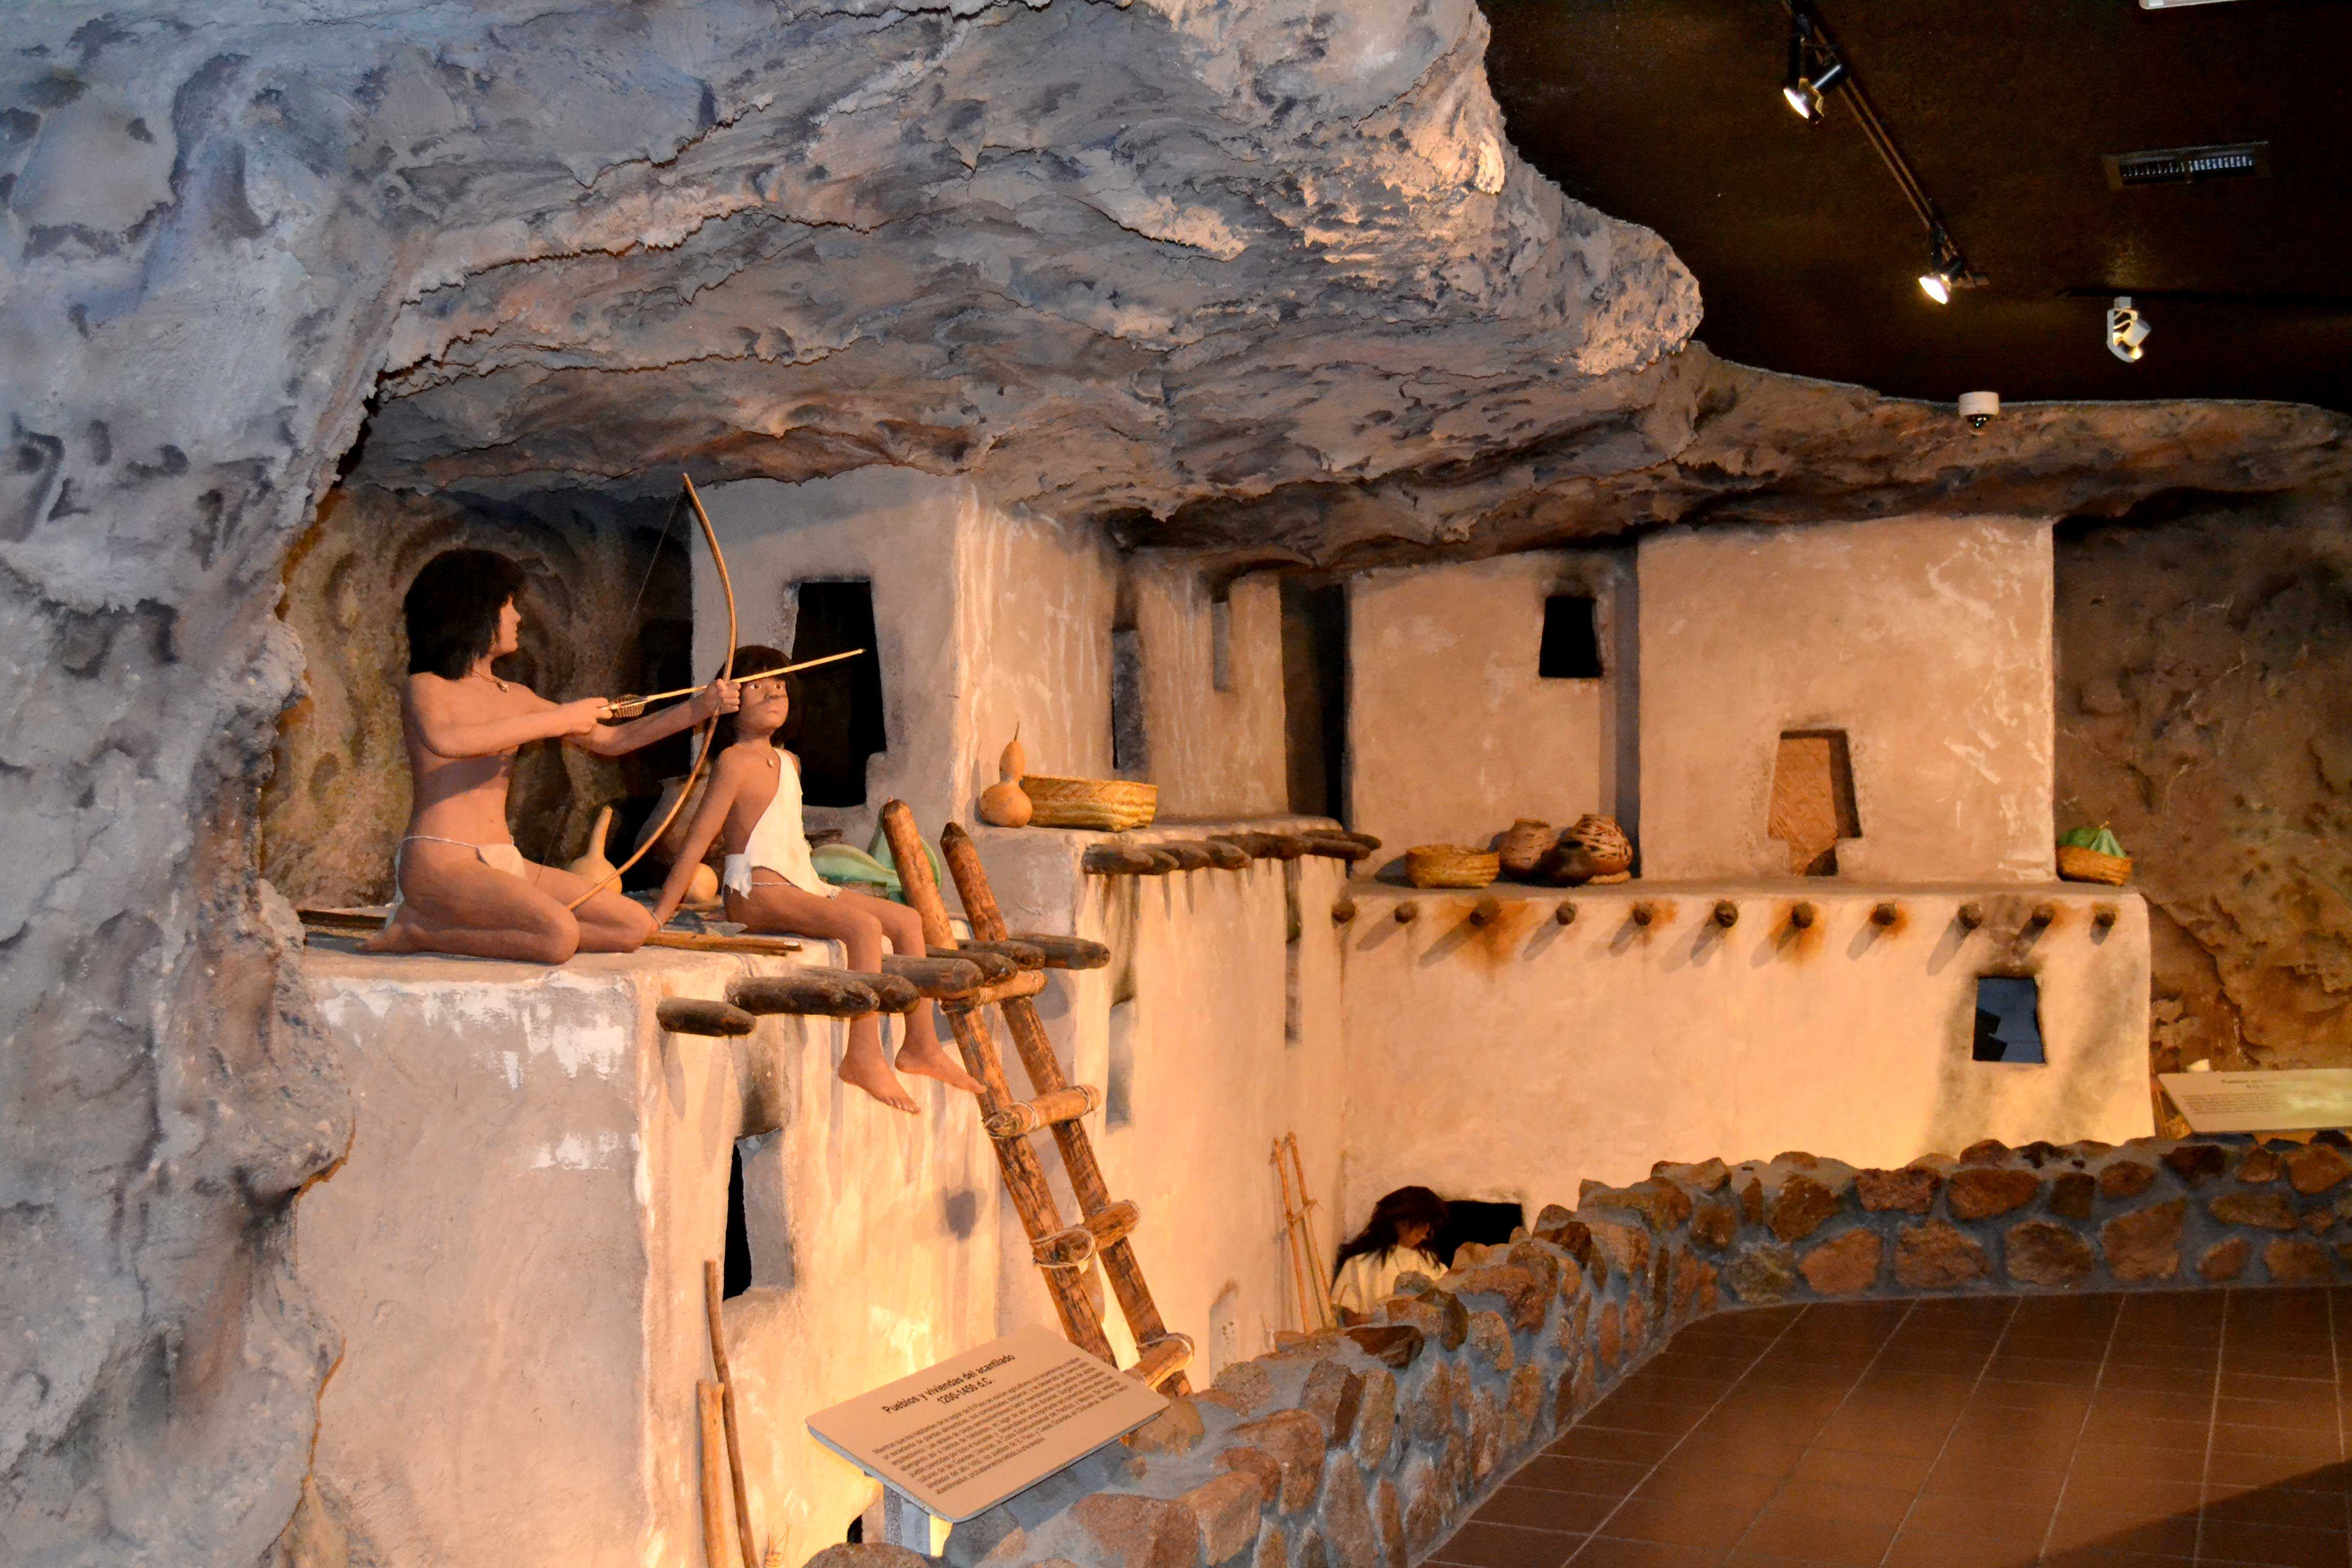 The Museum of Archaeology off Transmountain houses artifacts, replicas and authentic instruments from the native cultures of the land we inhabit.